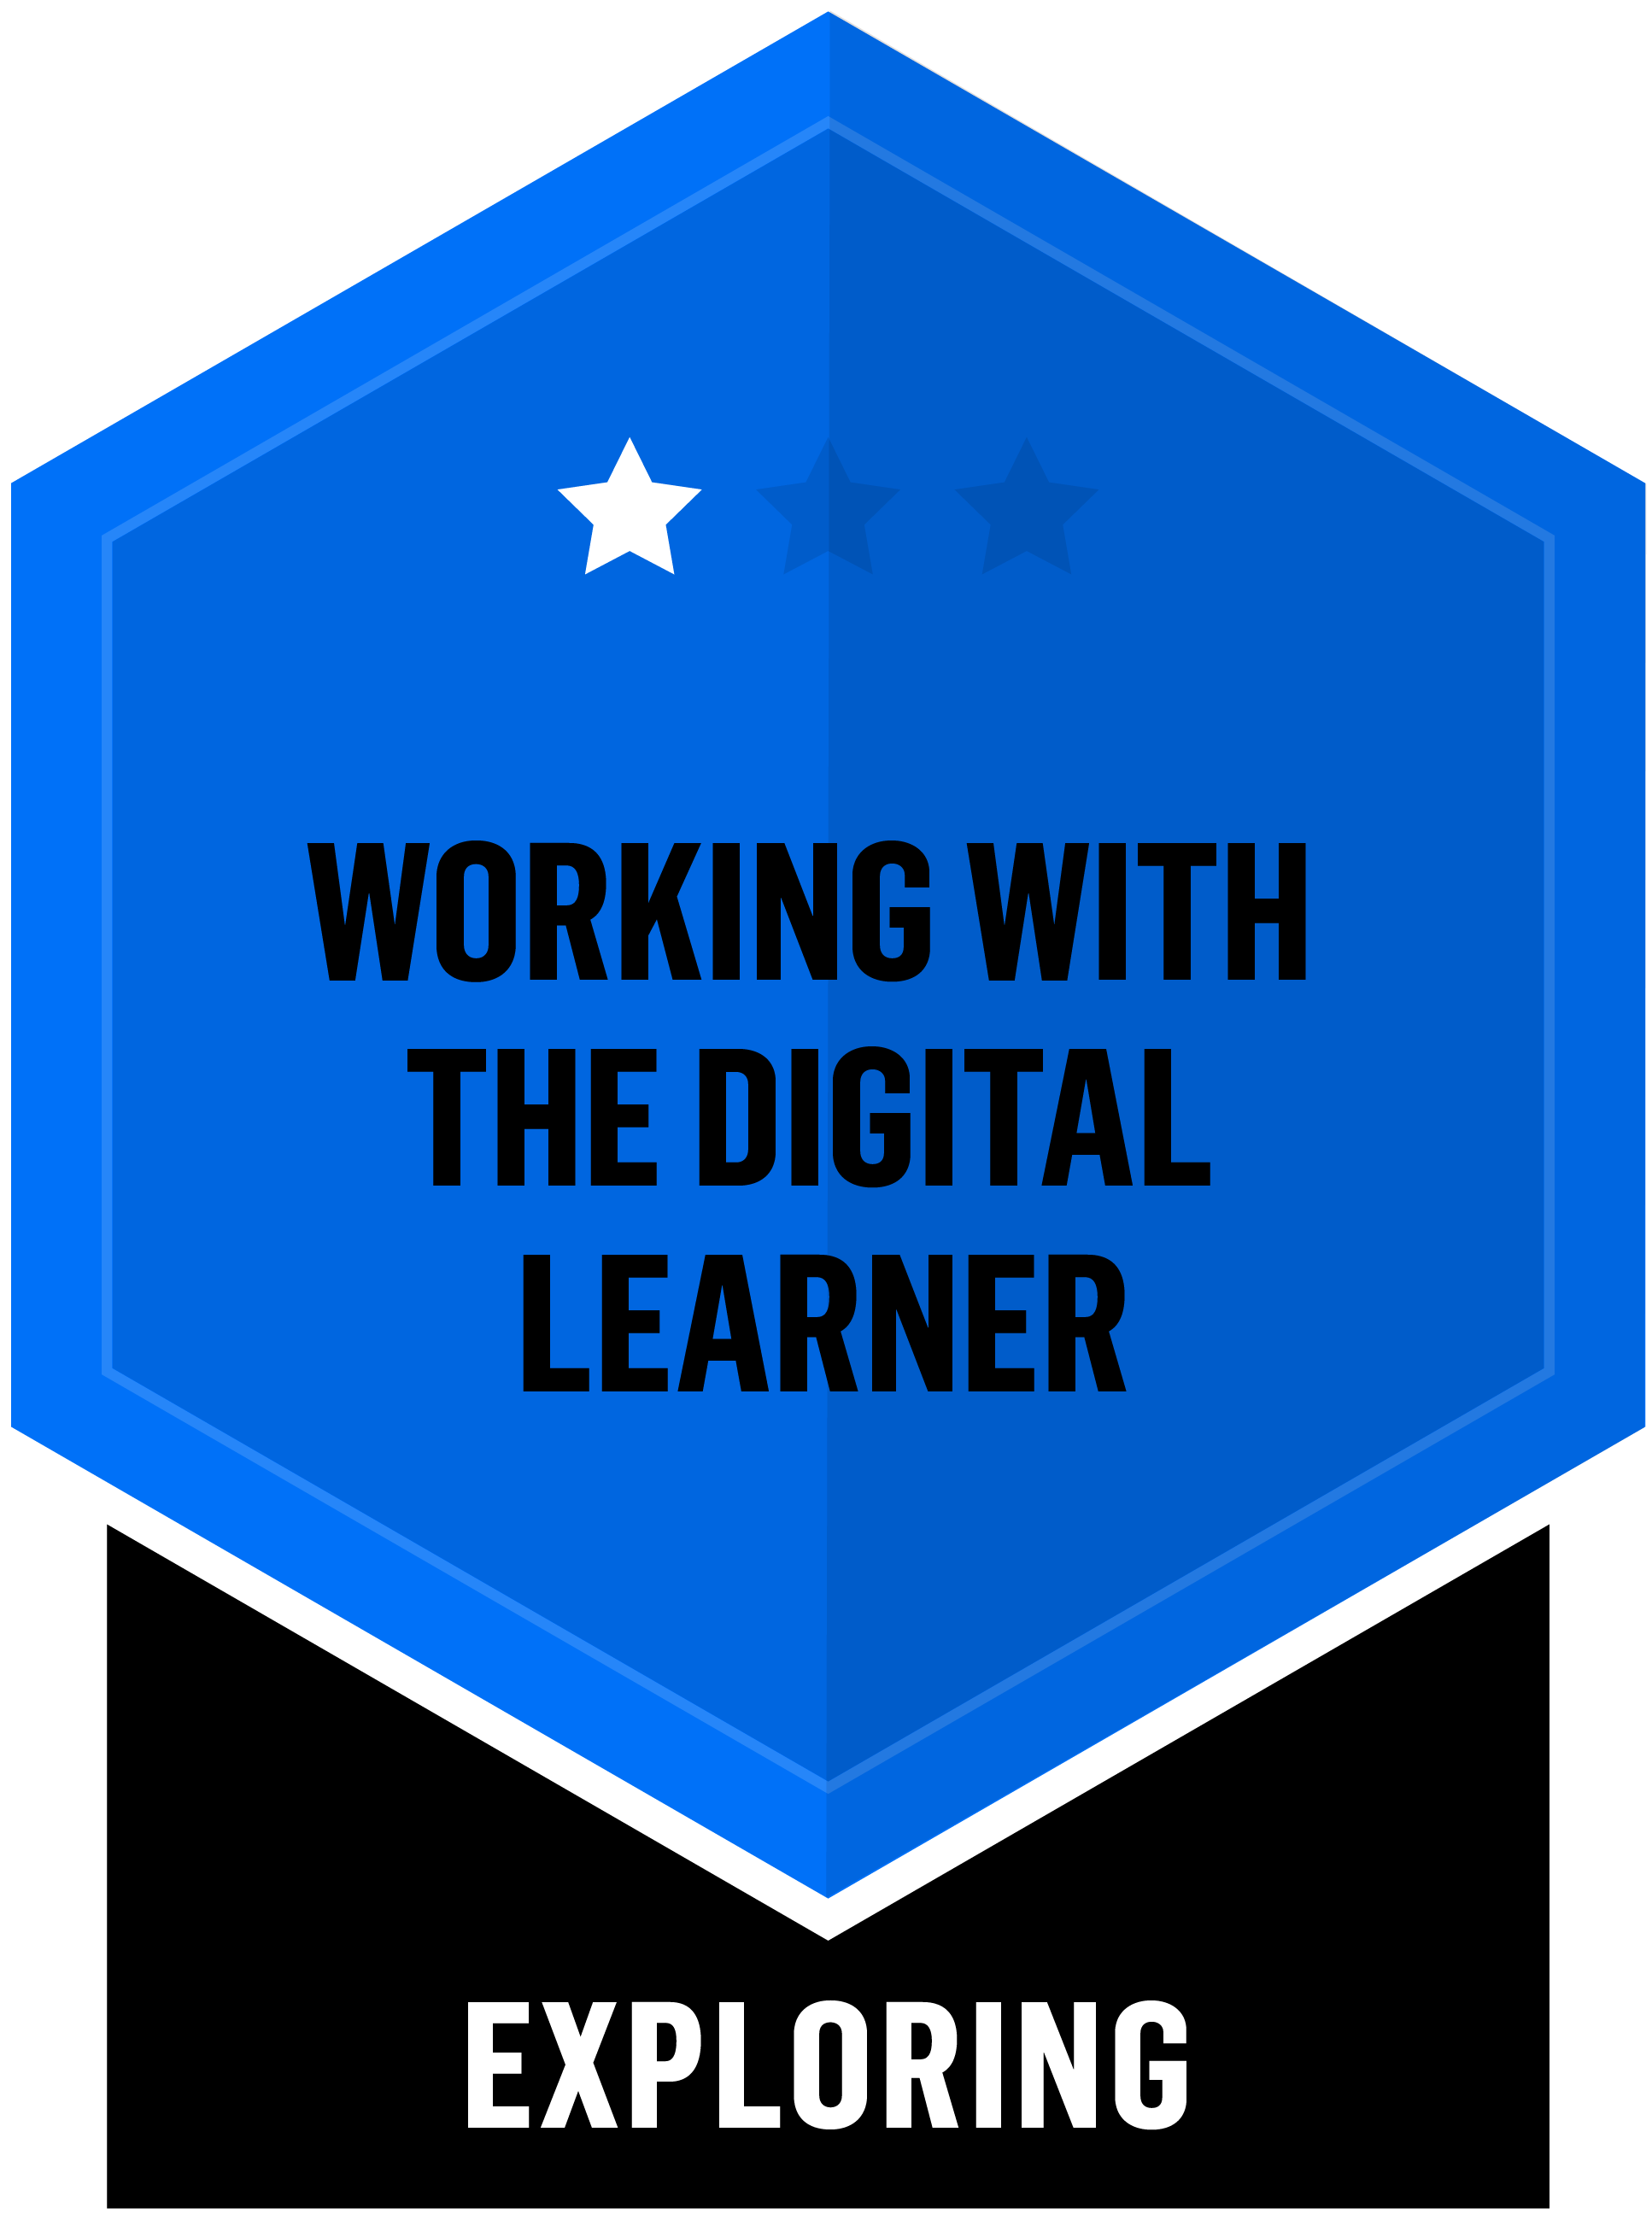 Badge for Working with the Digital Learner - Exploring